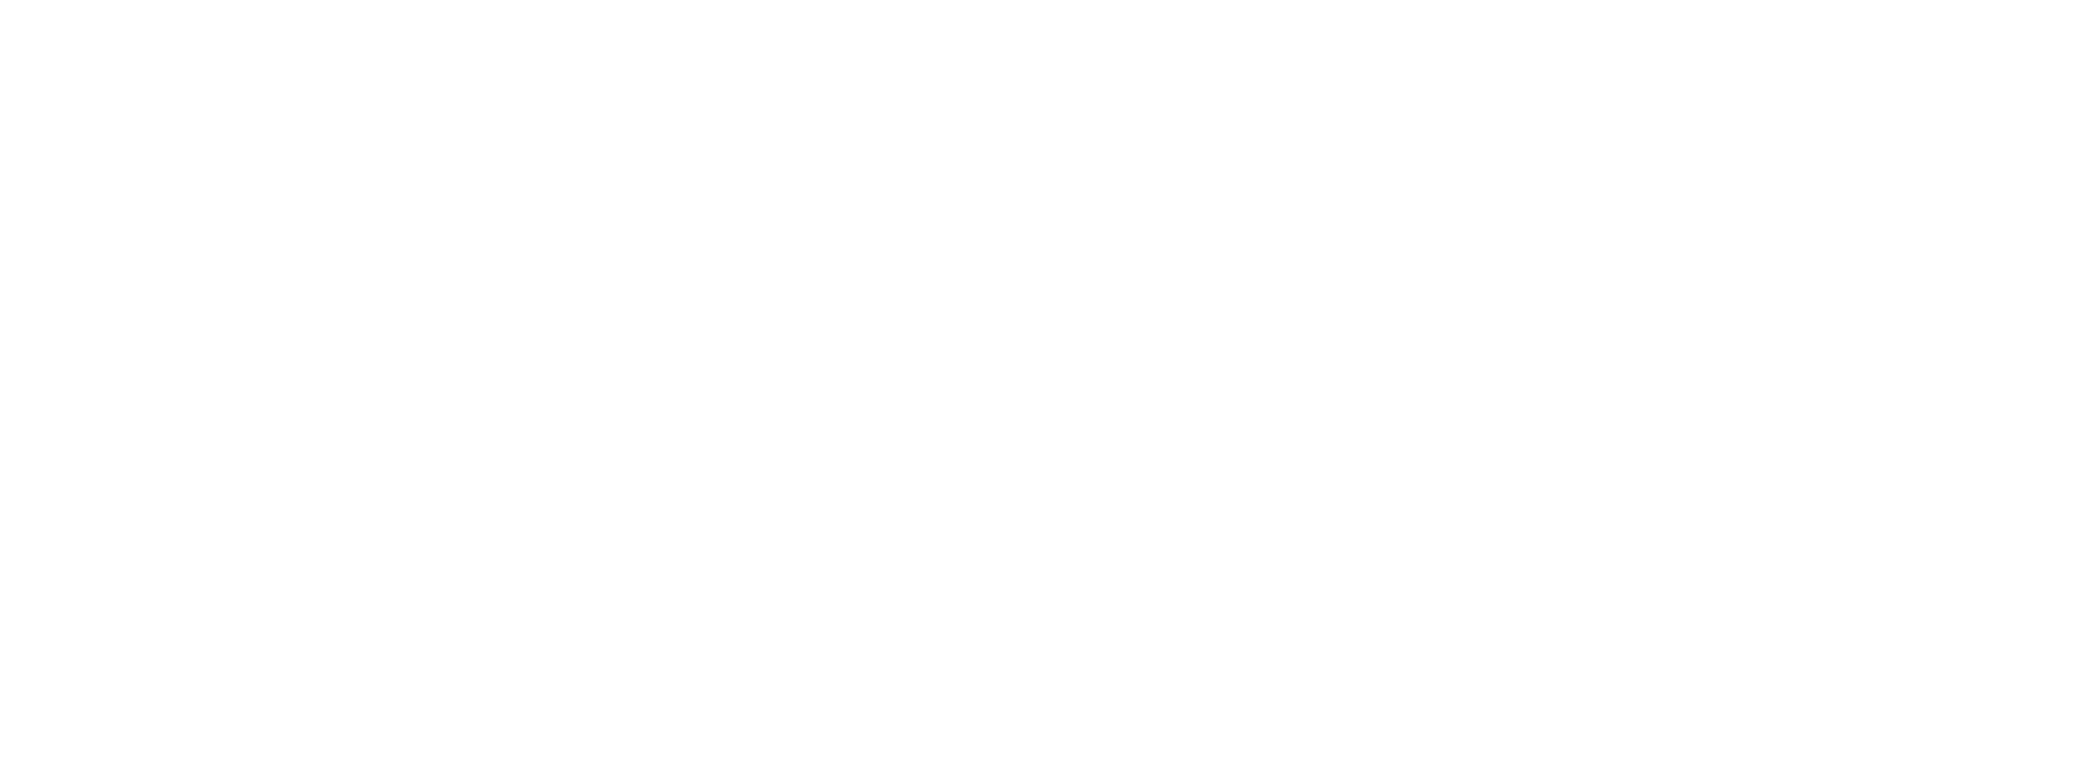 HonourThem | Death Notices, Obituaries And Memorial Pages Online